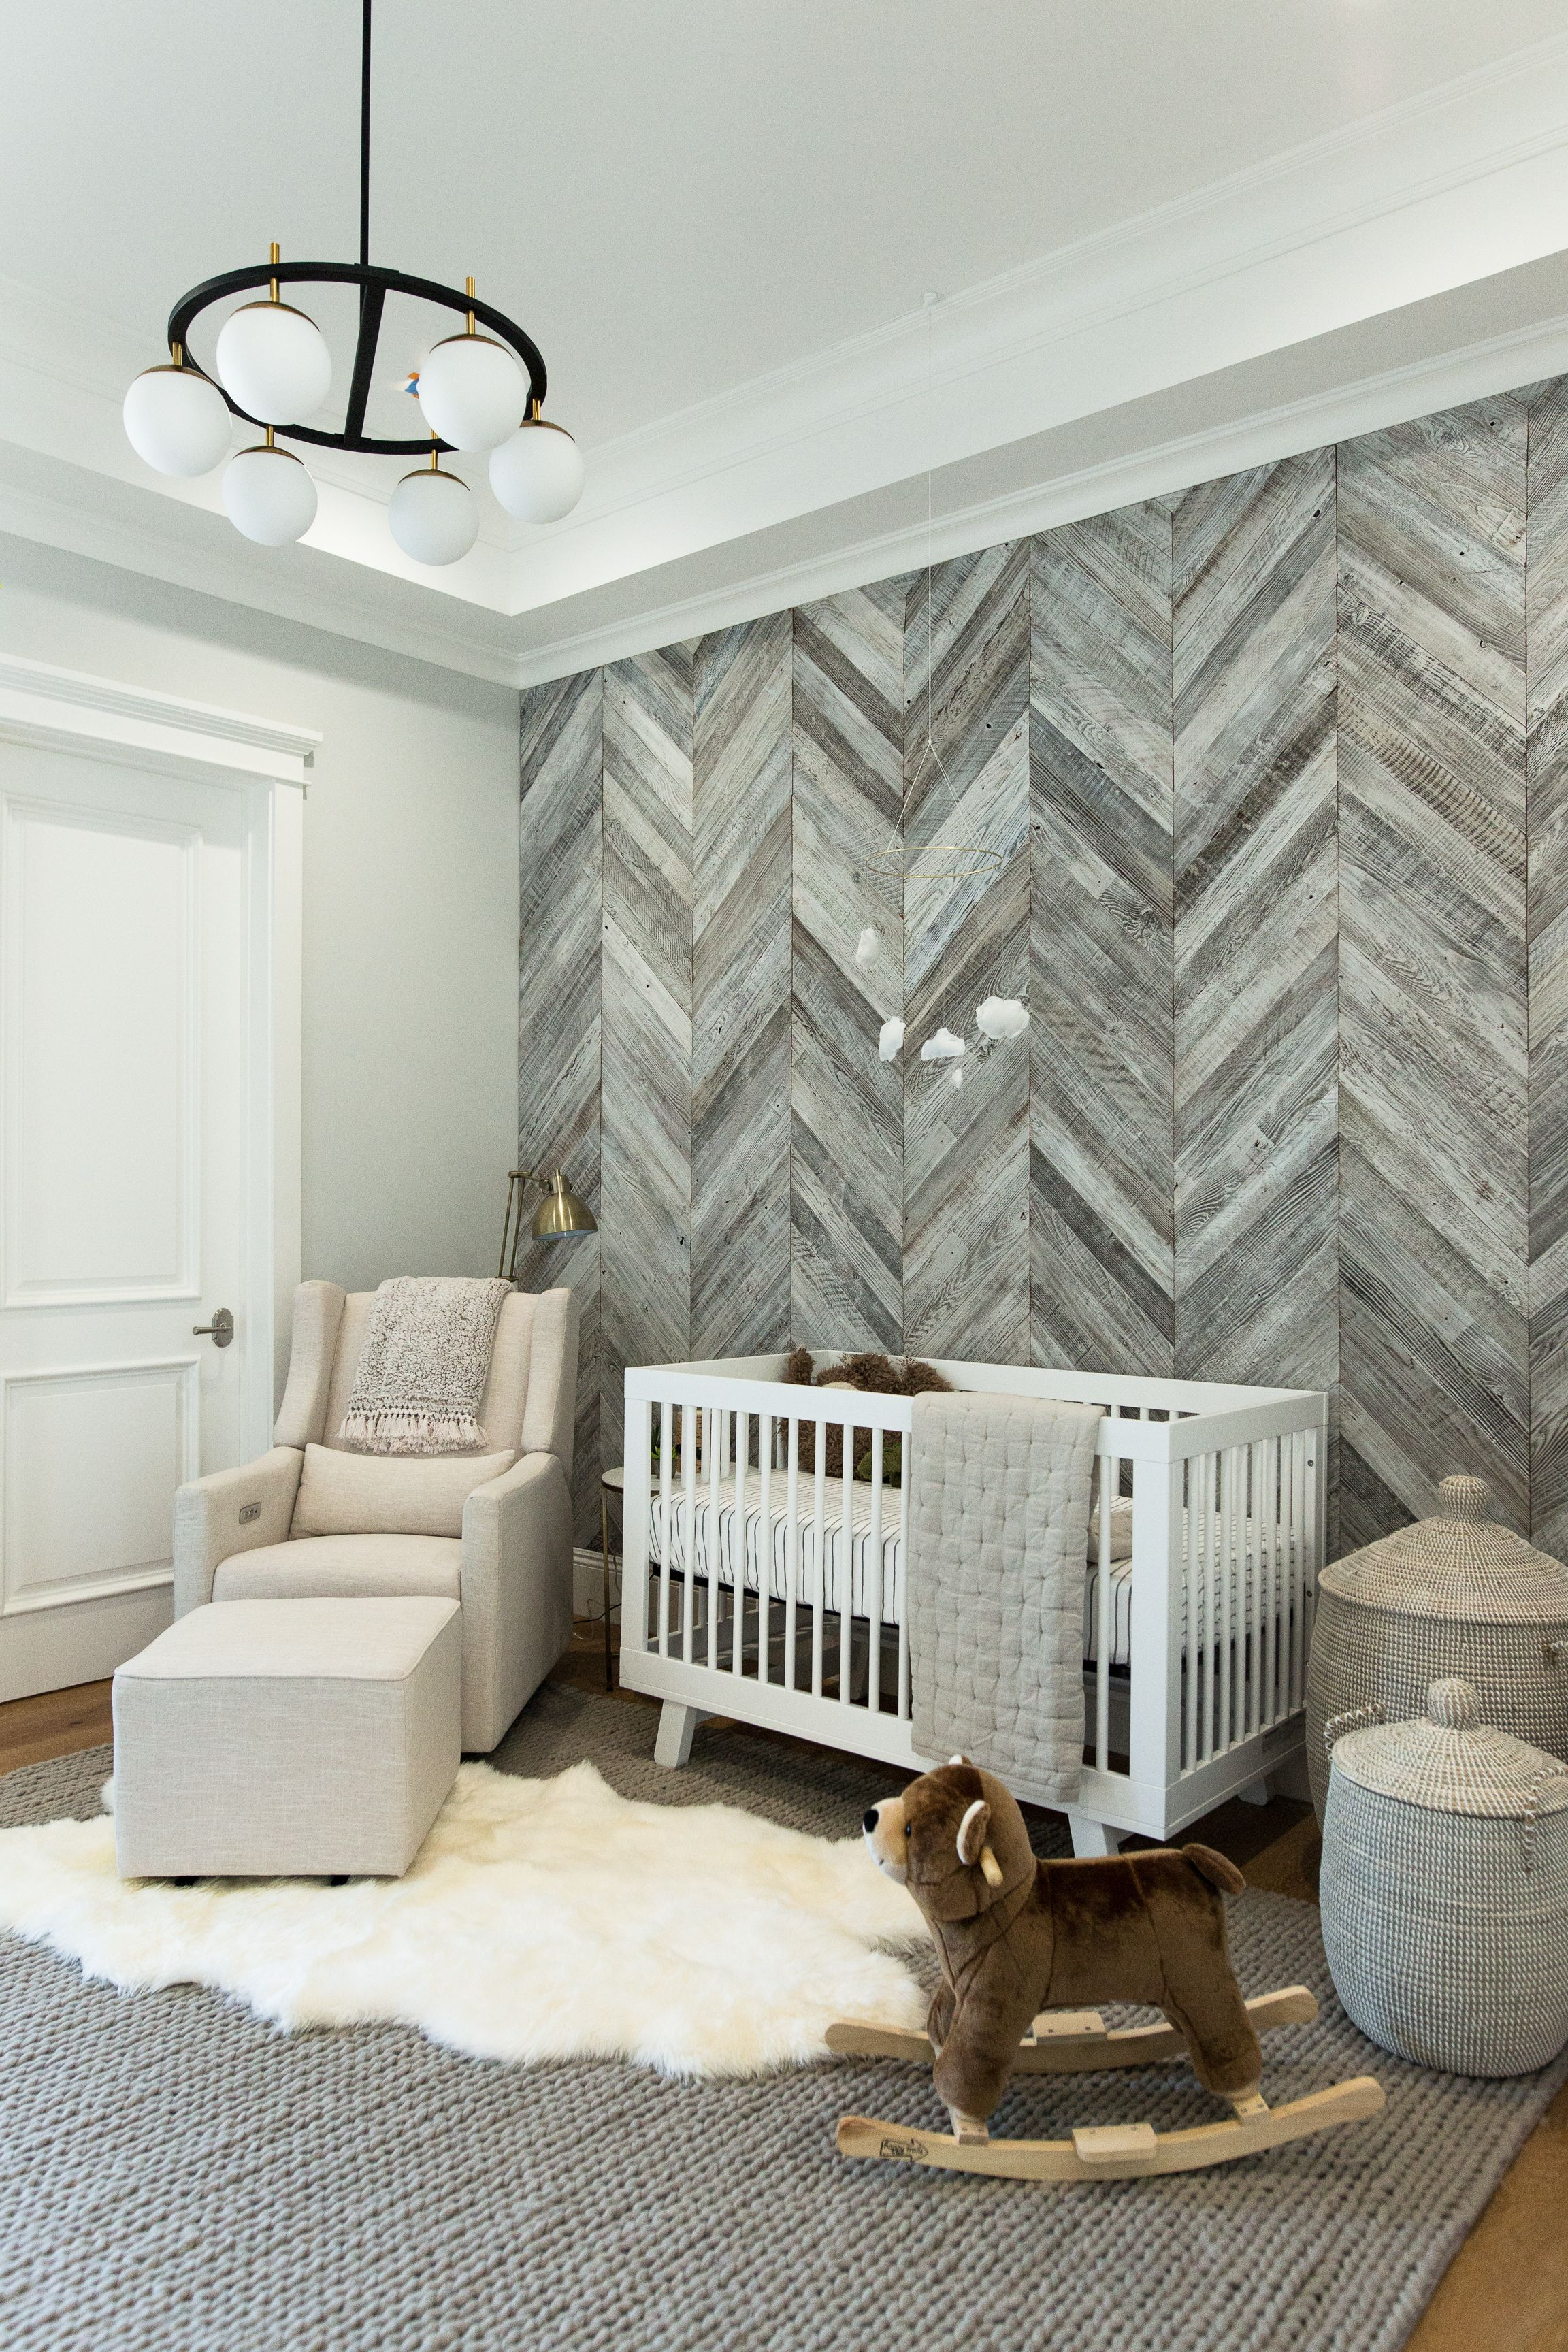 Diy Herringbone Wood Wall In 2019 For The Home Diy